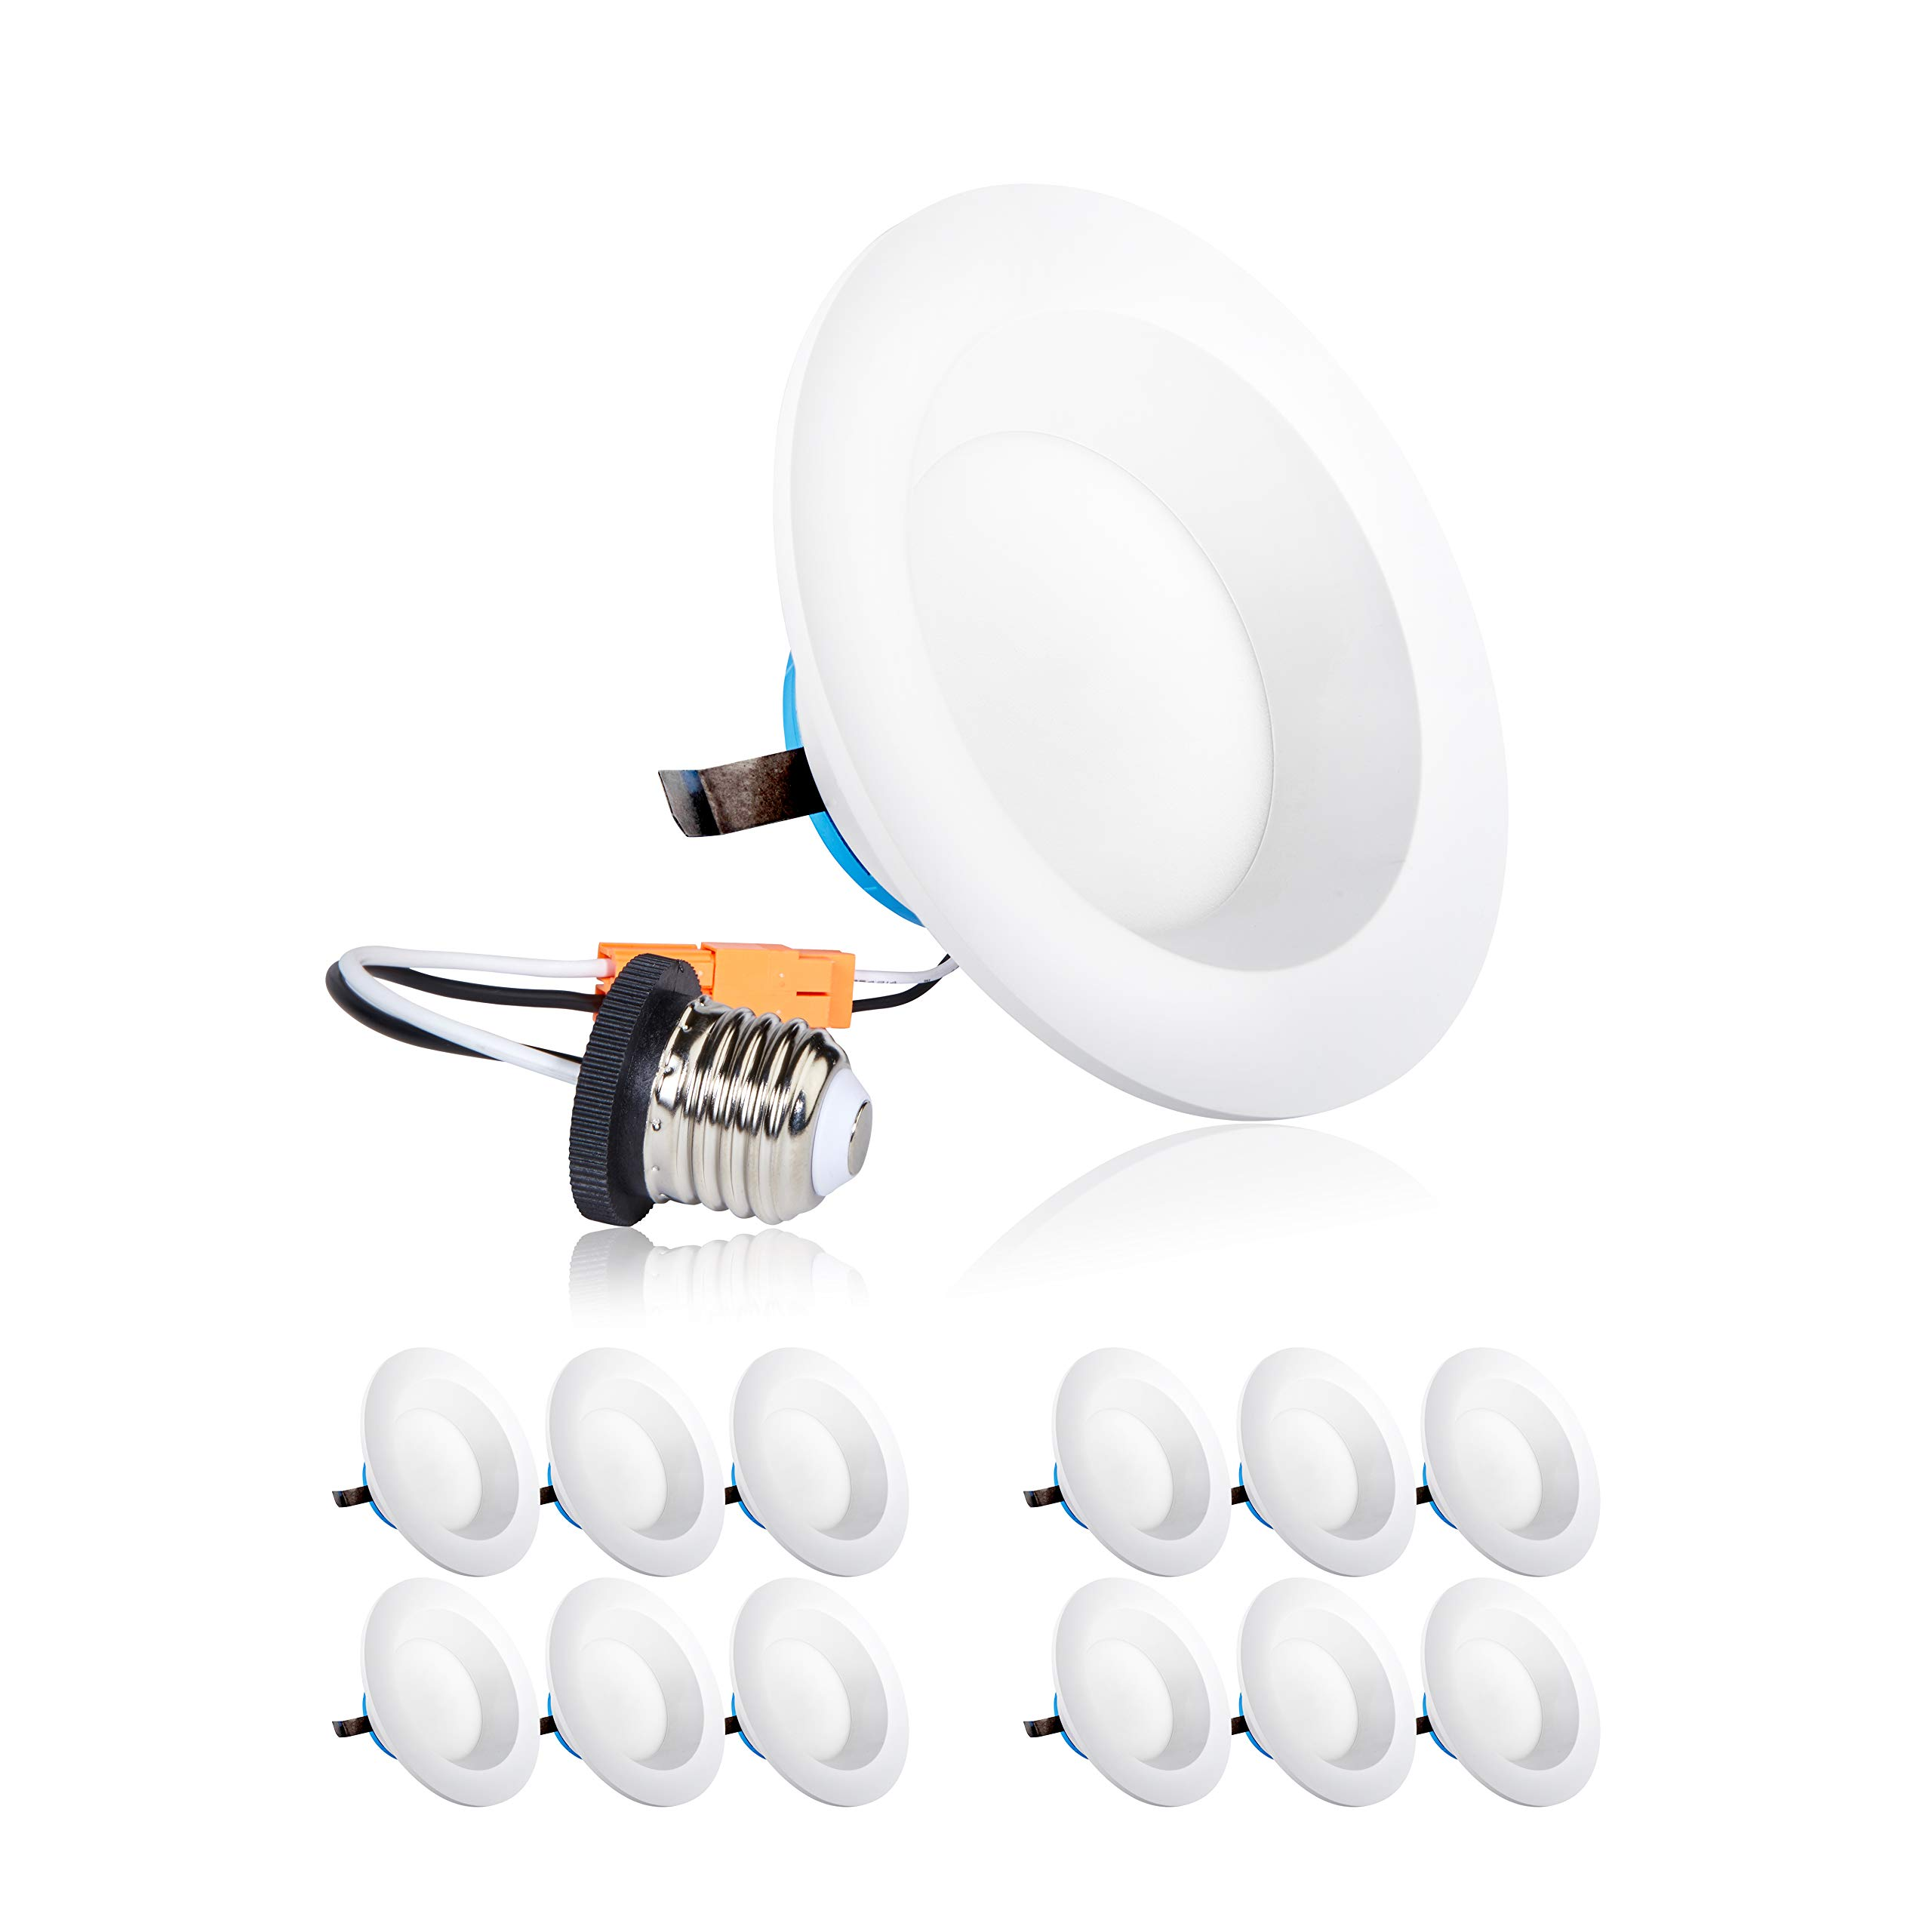 Parmida (12 Pack) 4 inch Dimmable LED Retrofit Recessed Downlight, 9W (65W Replacement), Smooth Design, 600lm, 3000K (Soft White), Energy Star & ETL, LED Ceiling Can Light, LED Trim